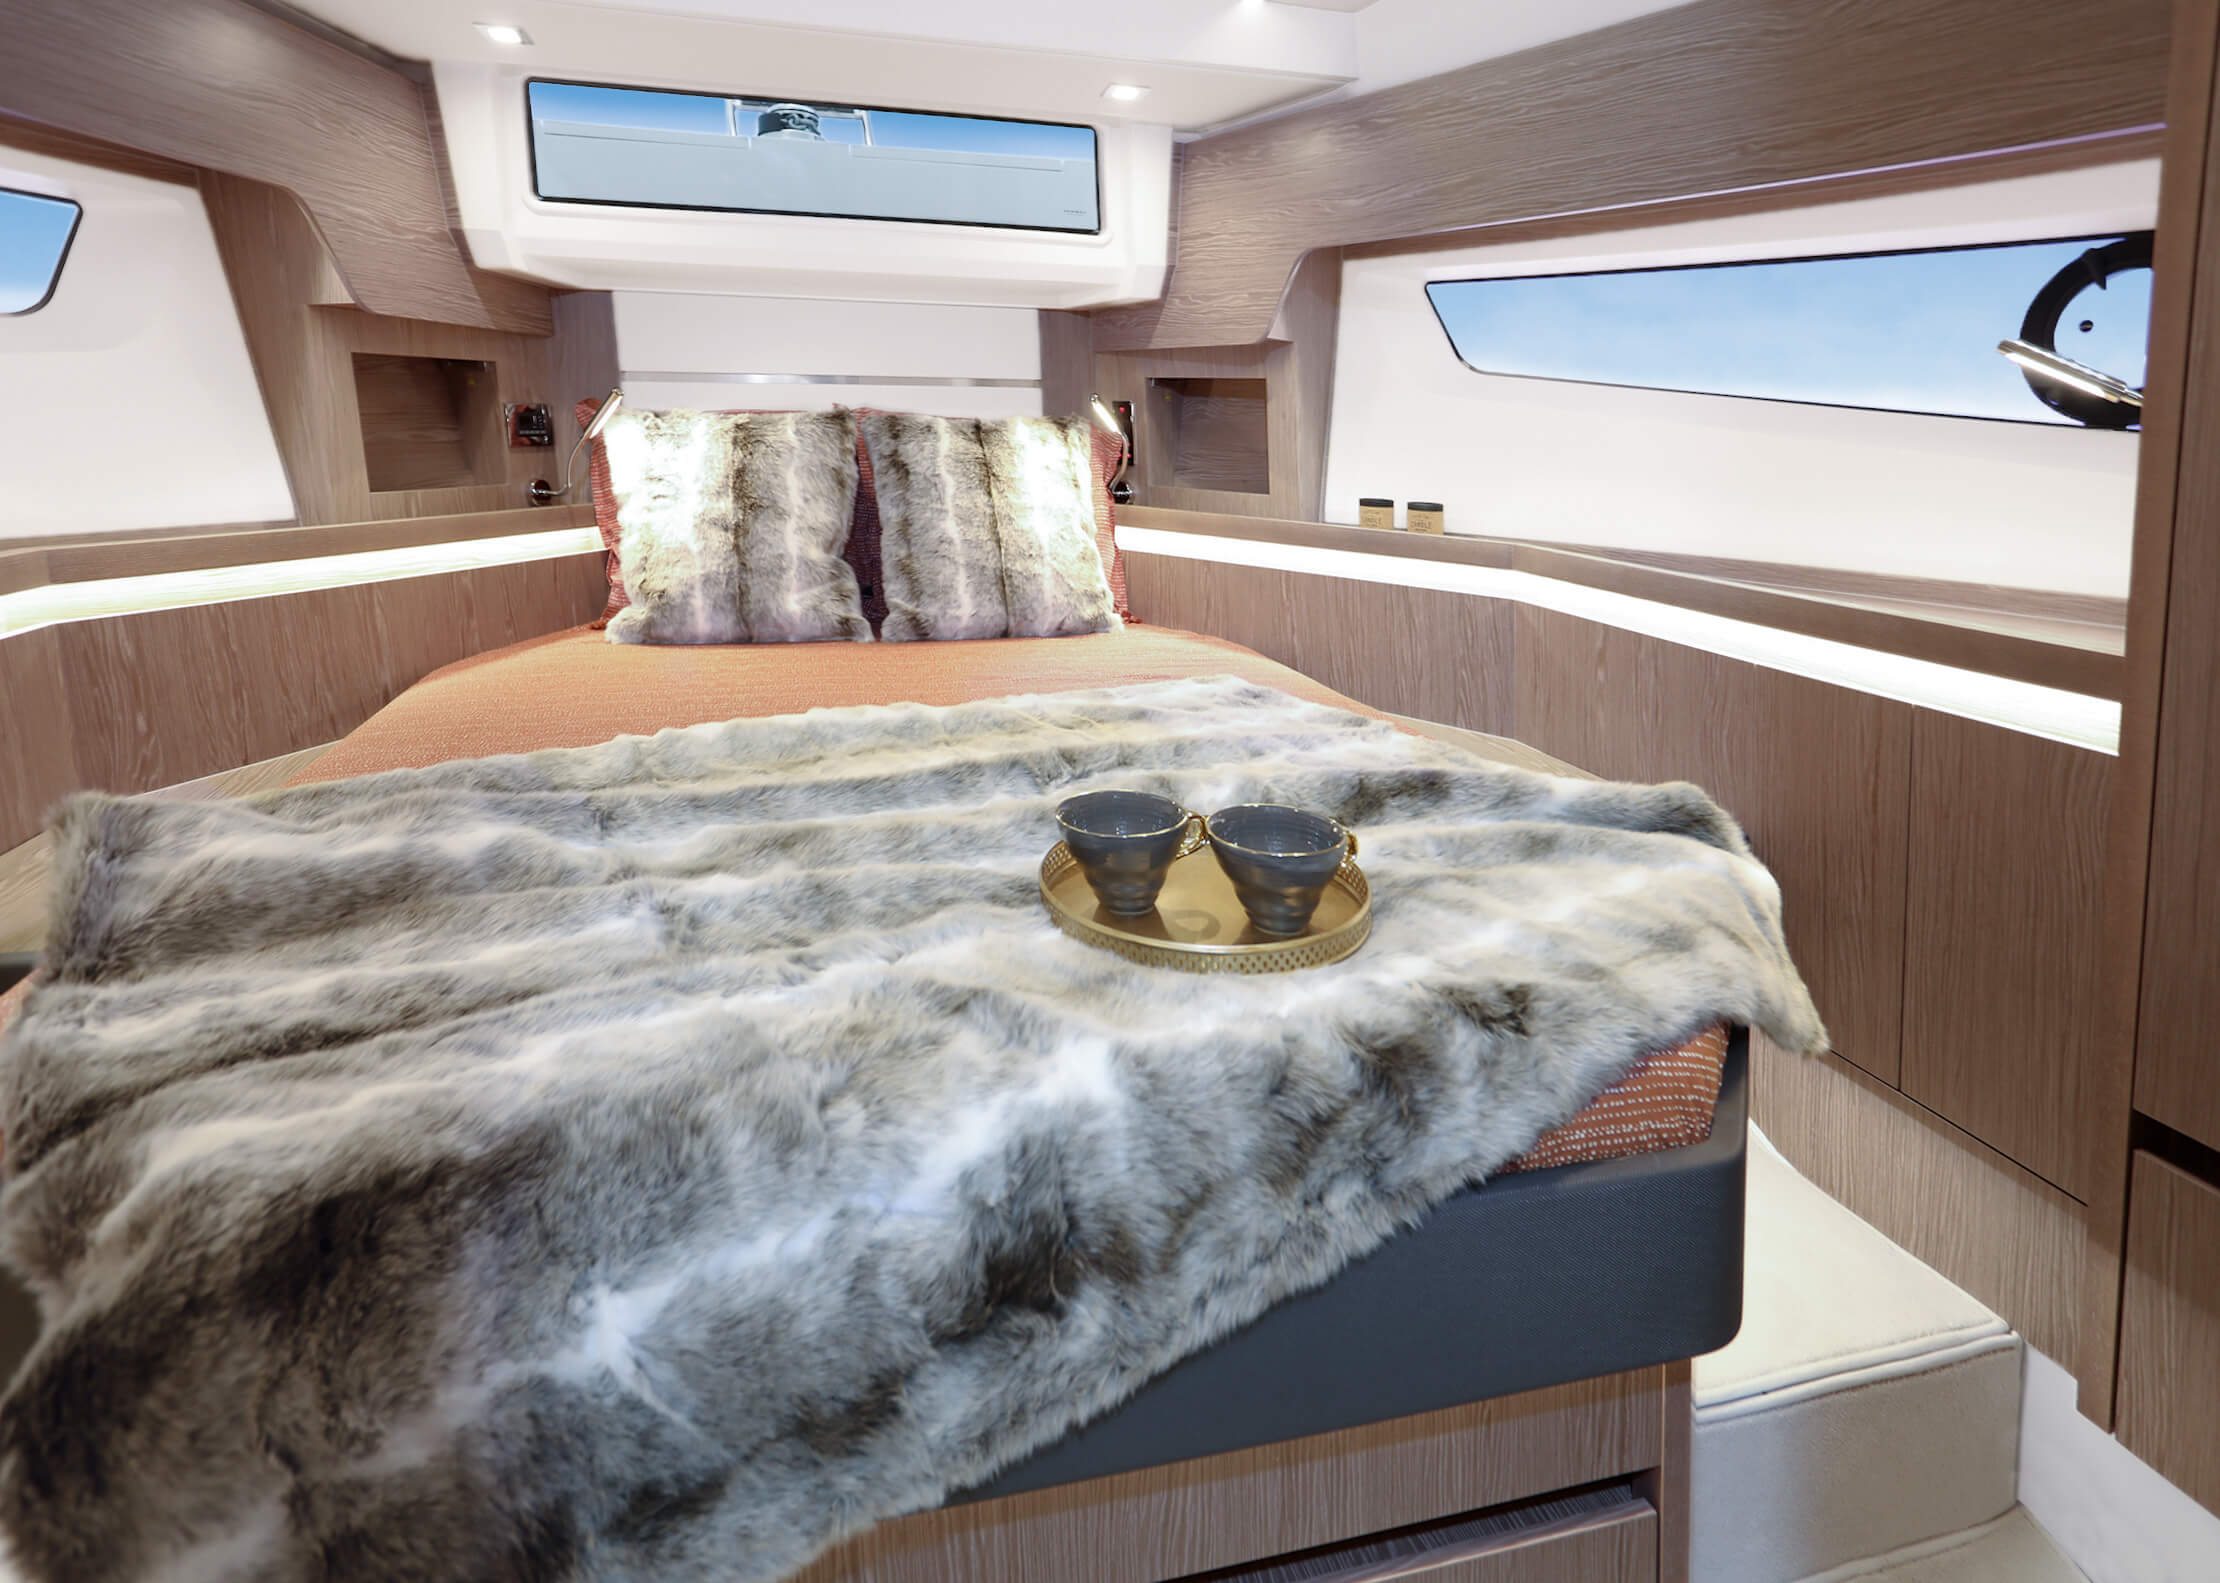 Sealine F430 Iç mekan görünümü | VIP cabin with double berth, 2 wardrobes and sideboards with stowage and two bedside tables. 1 drawer underneath the bed. | Sealine